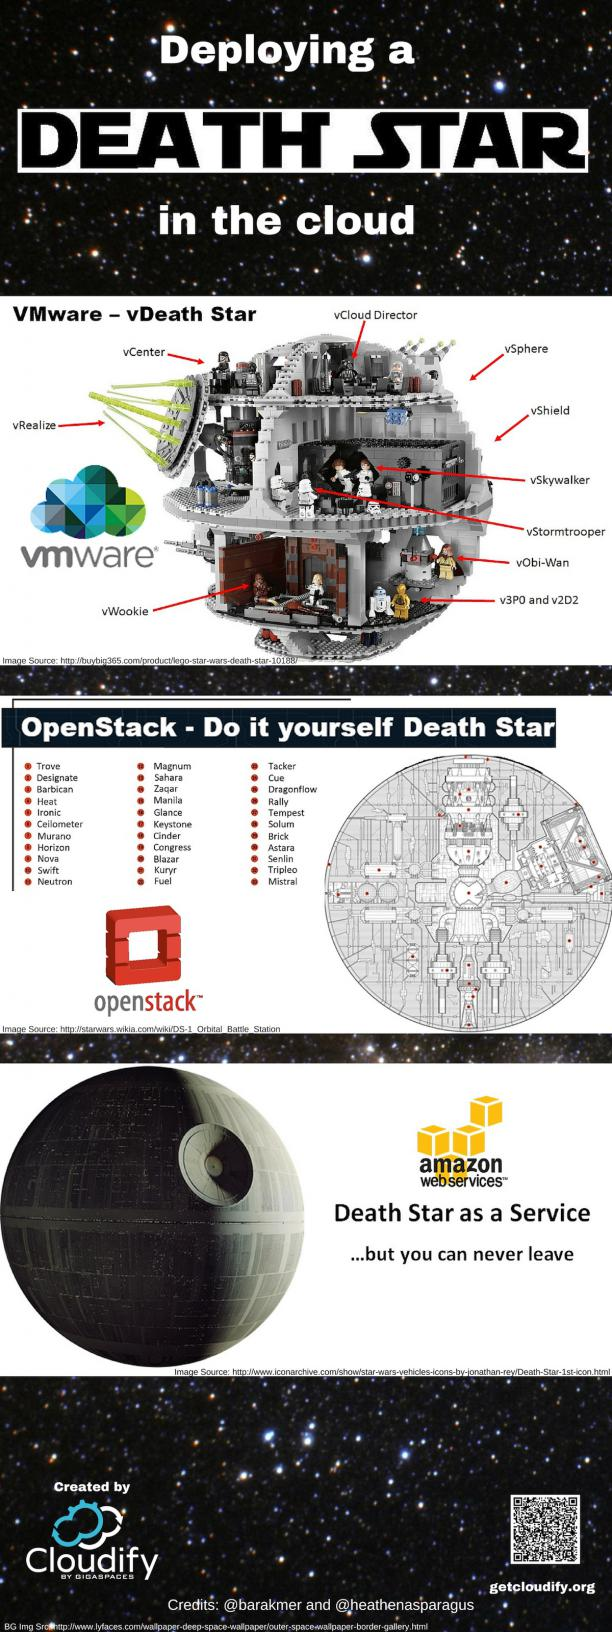 Deploying Death Star in the Cloud